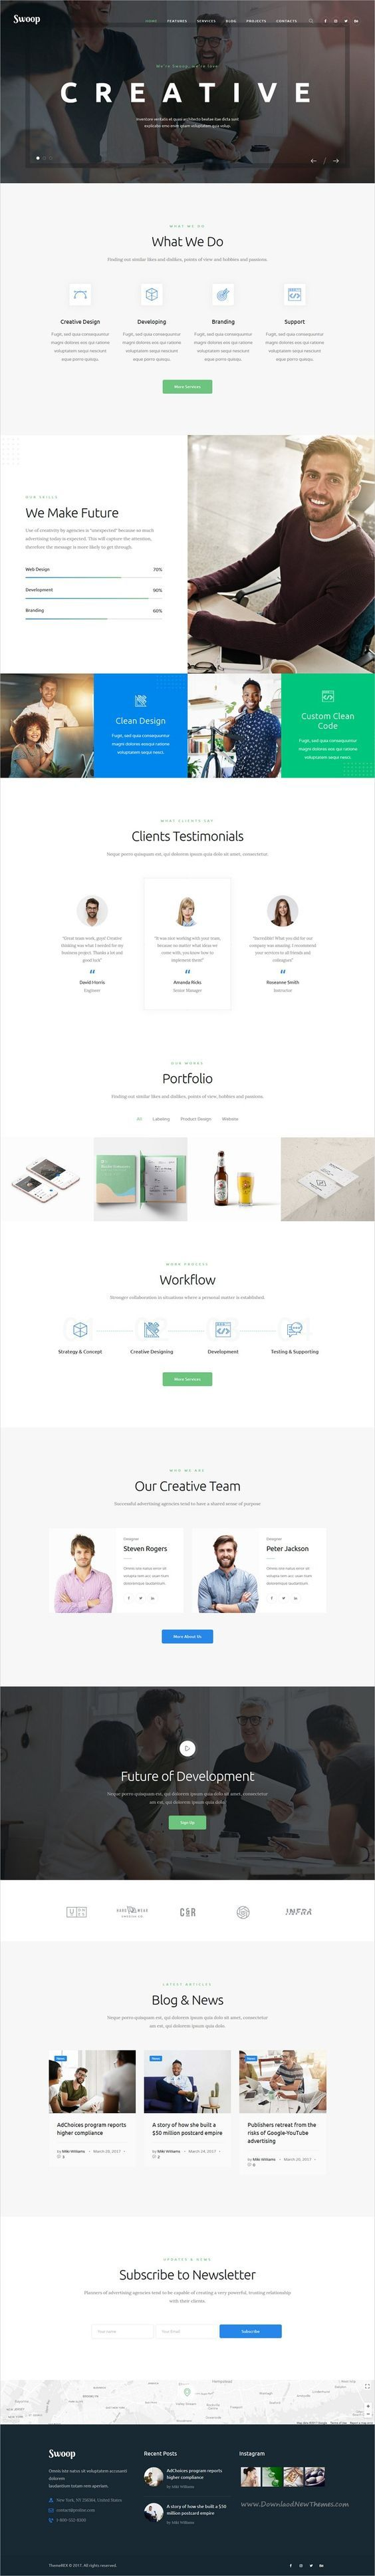 Swoop is clean and modern design 3in1 responsive #WordPress theme for web #studio and #creative agency website download now..